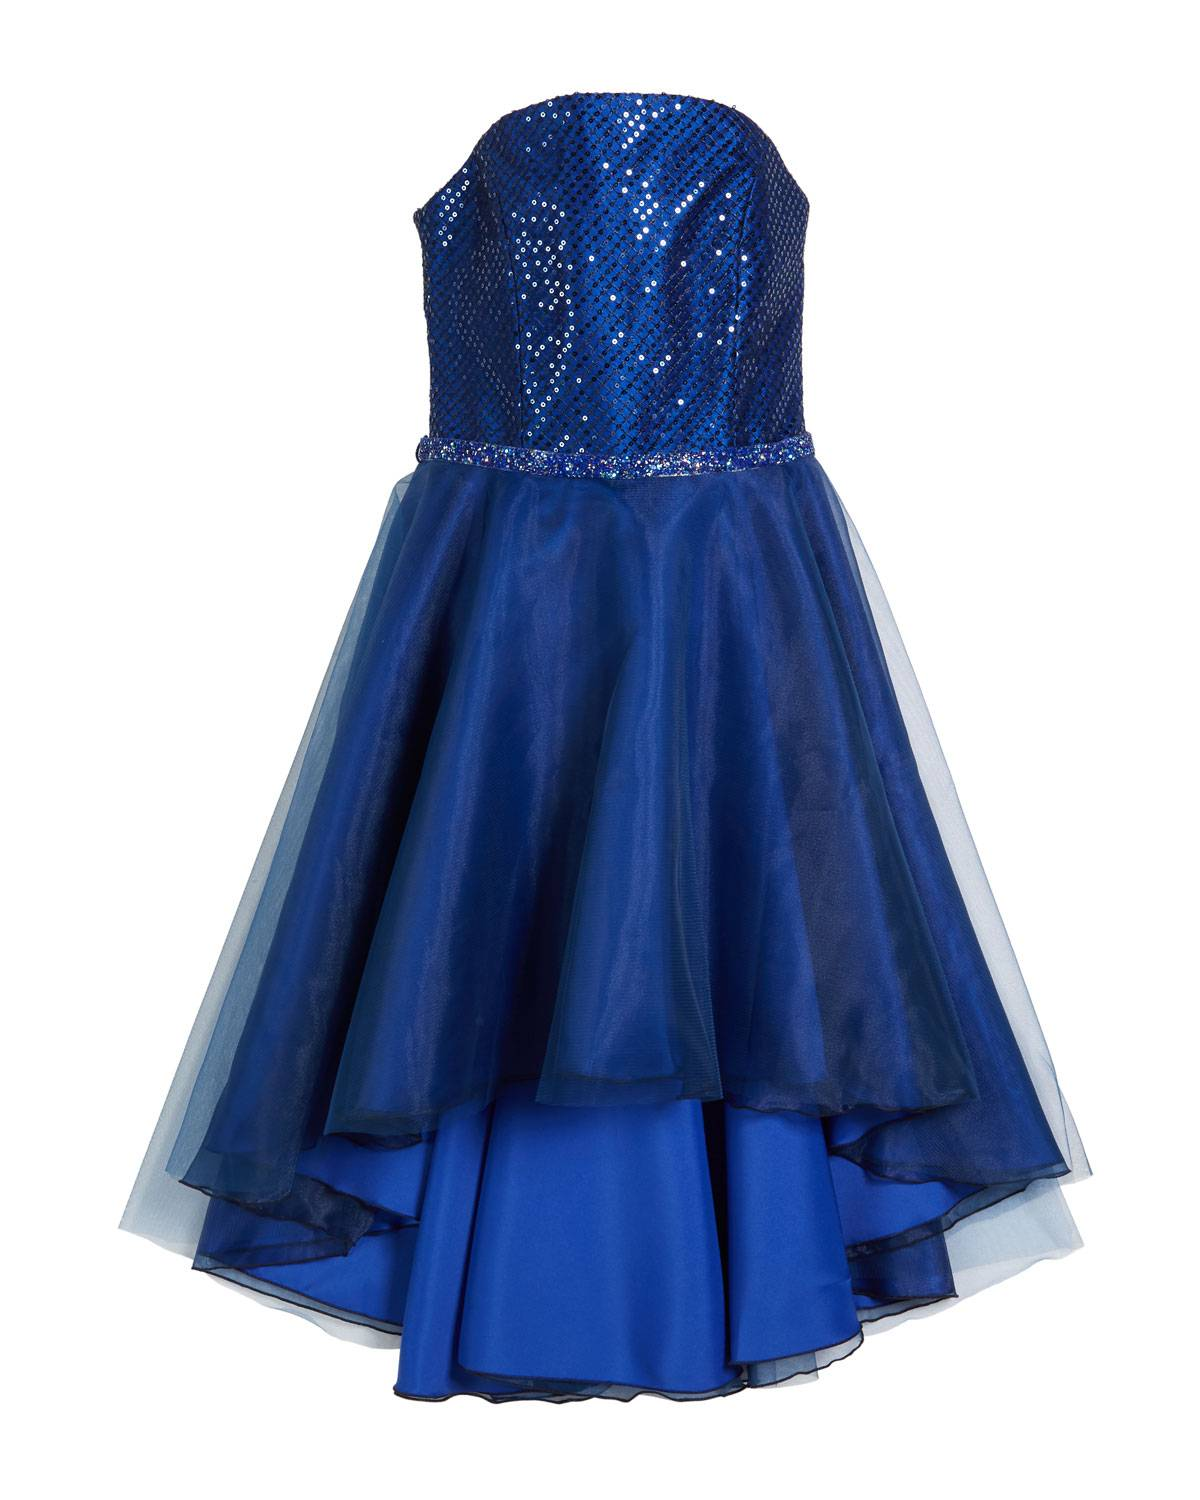 Zoe Sequin Embroidered & Organza High-Low Dress, Size 7-16